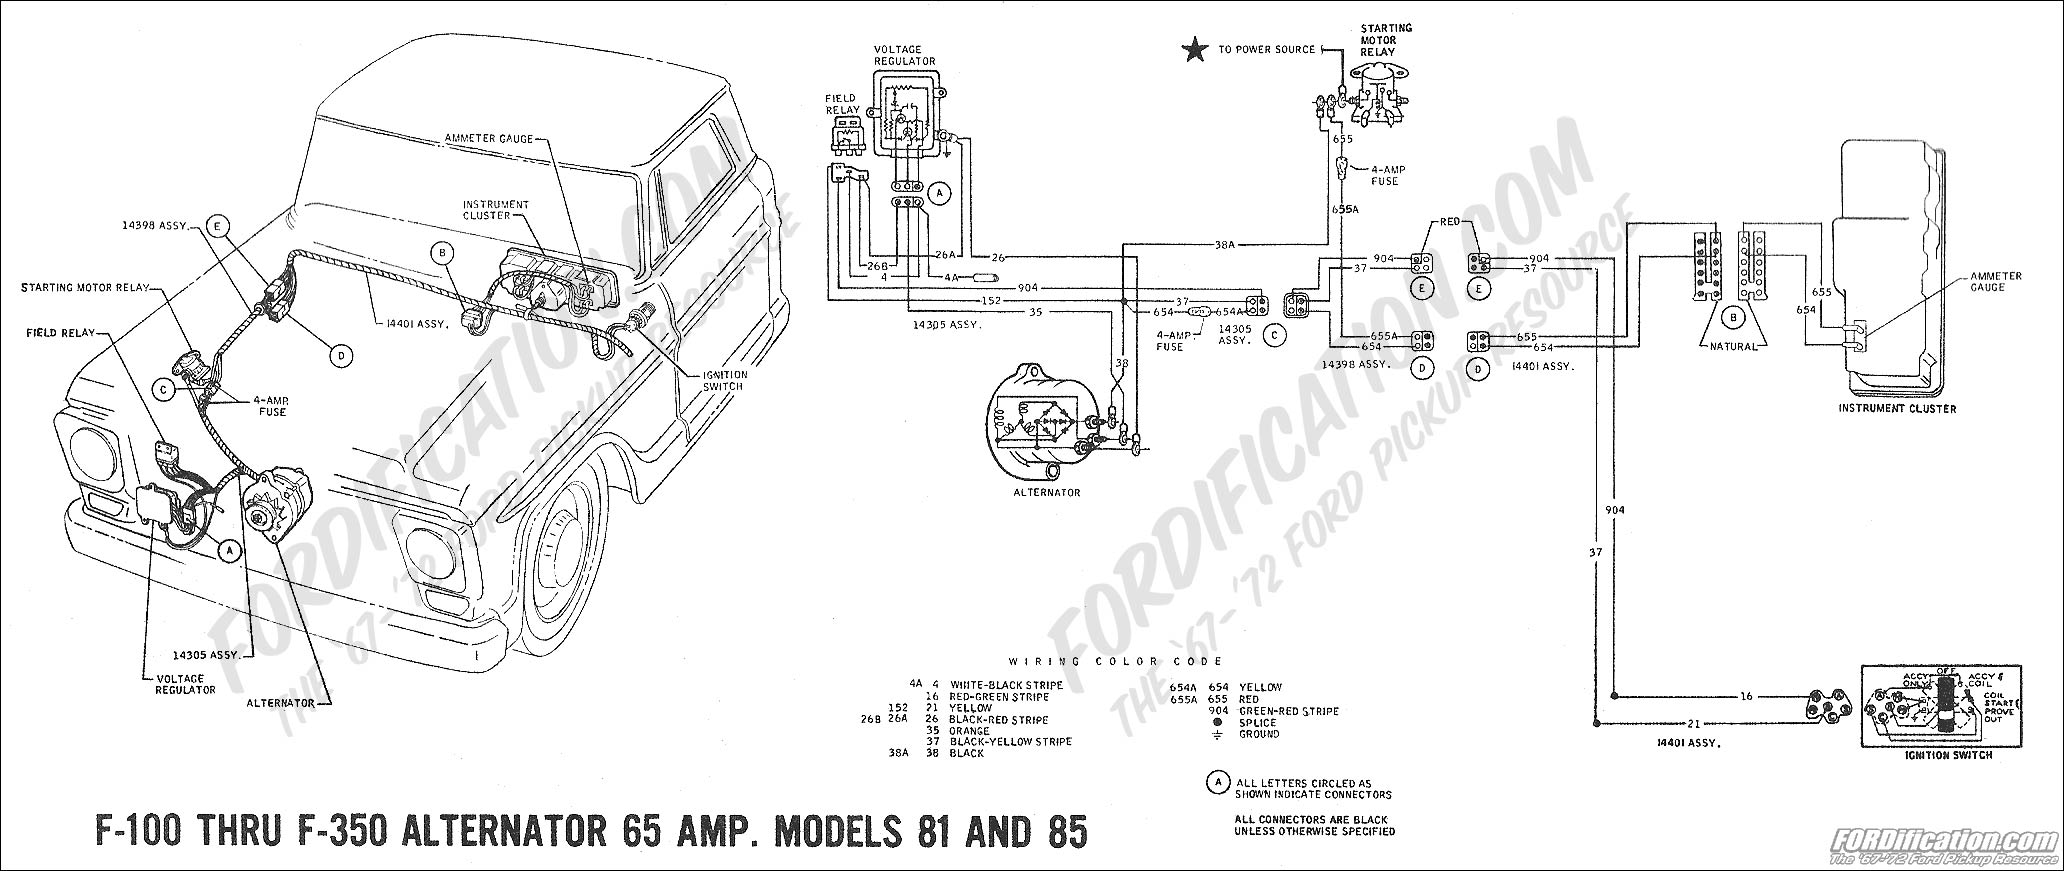 Charging System Wiring Diagram 1976 Ford F250 additionally Engine Light Flashes furthermore Dodge D100 600 And W100 500 Turn Signal besides XL GXL Models additionally 390461349369. on tractor indicator wiring diagram